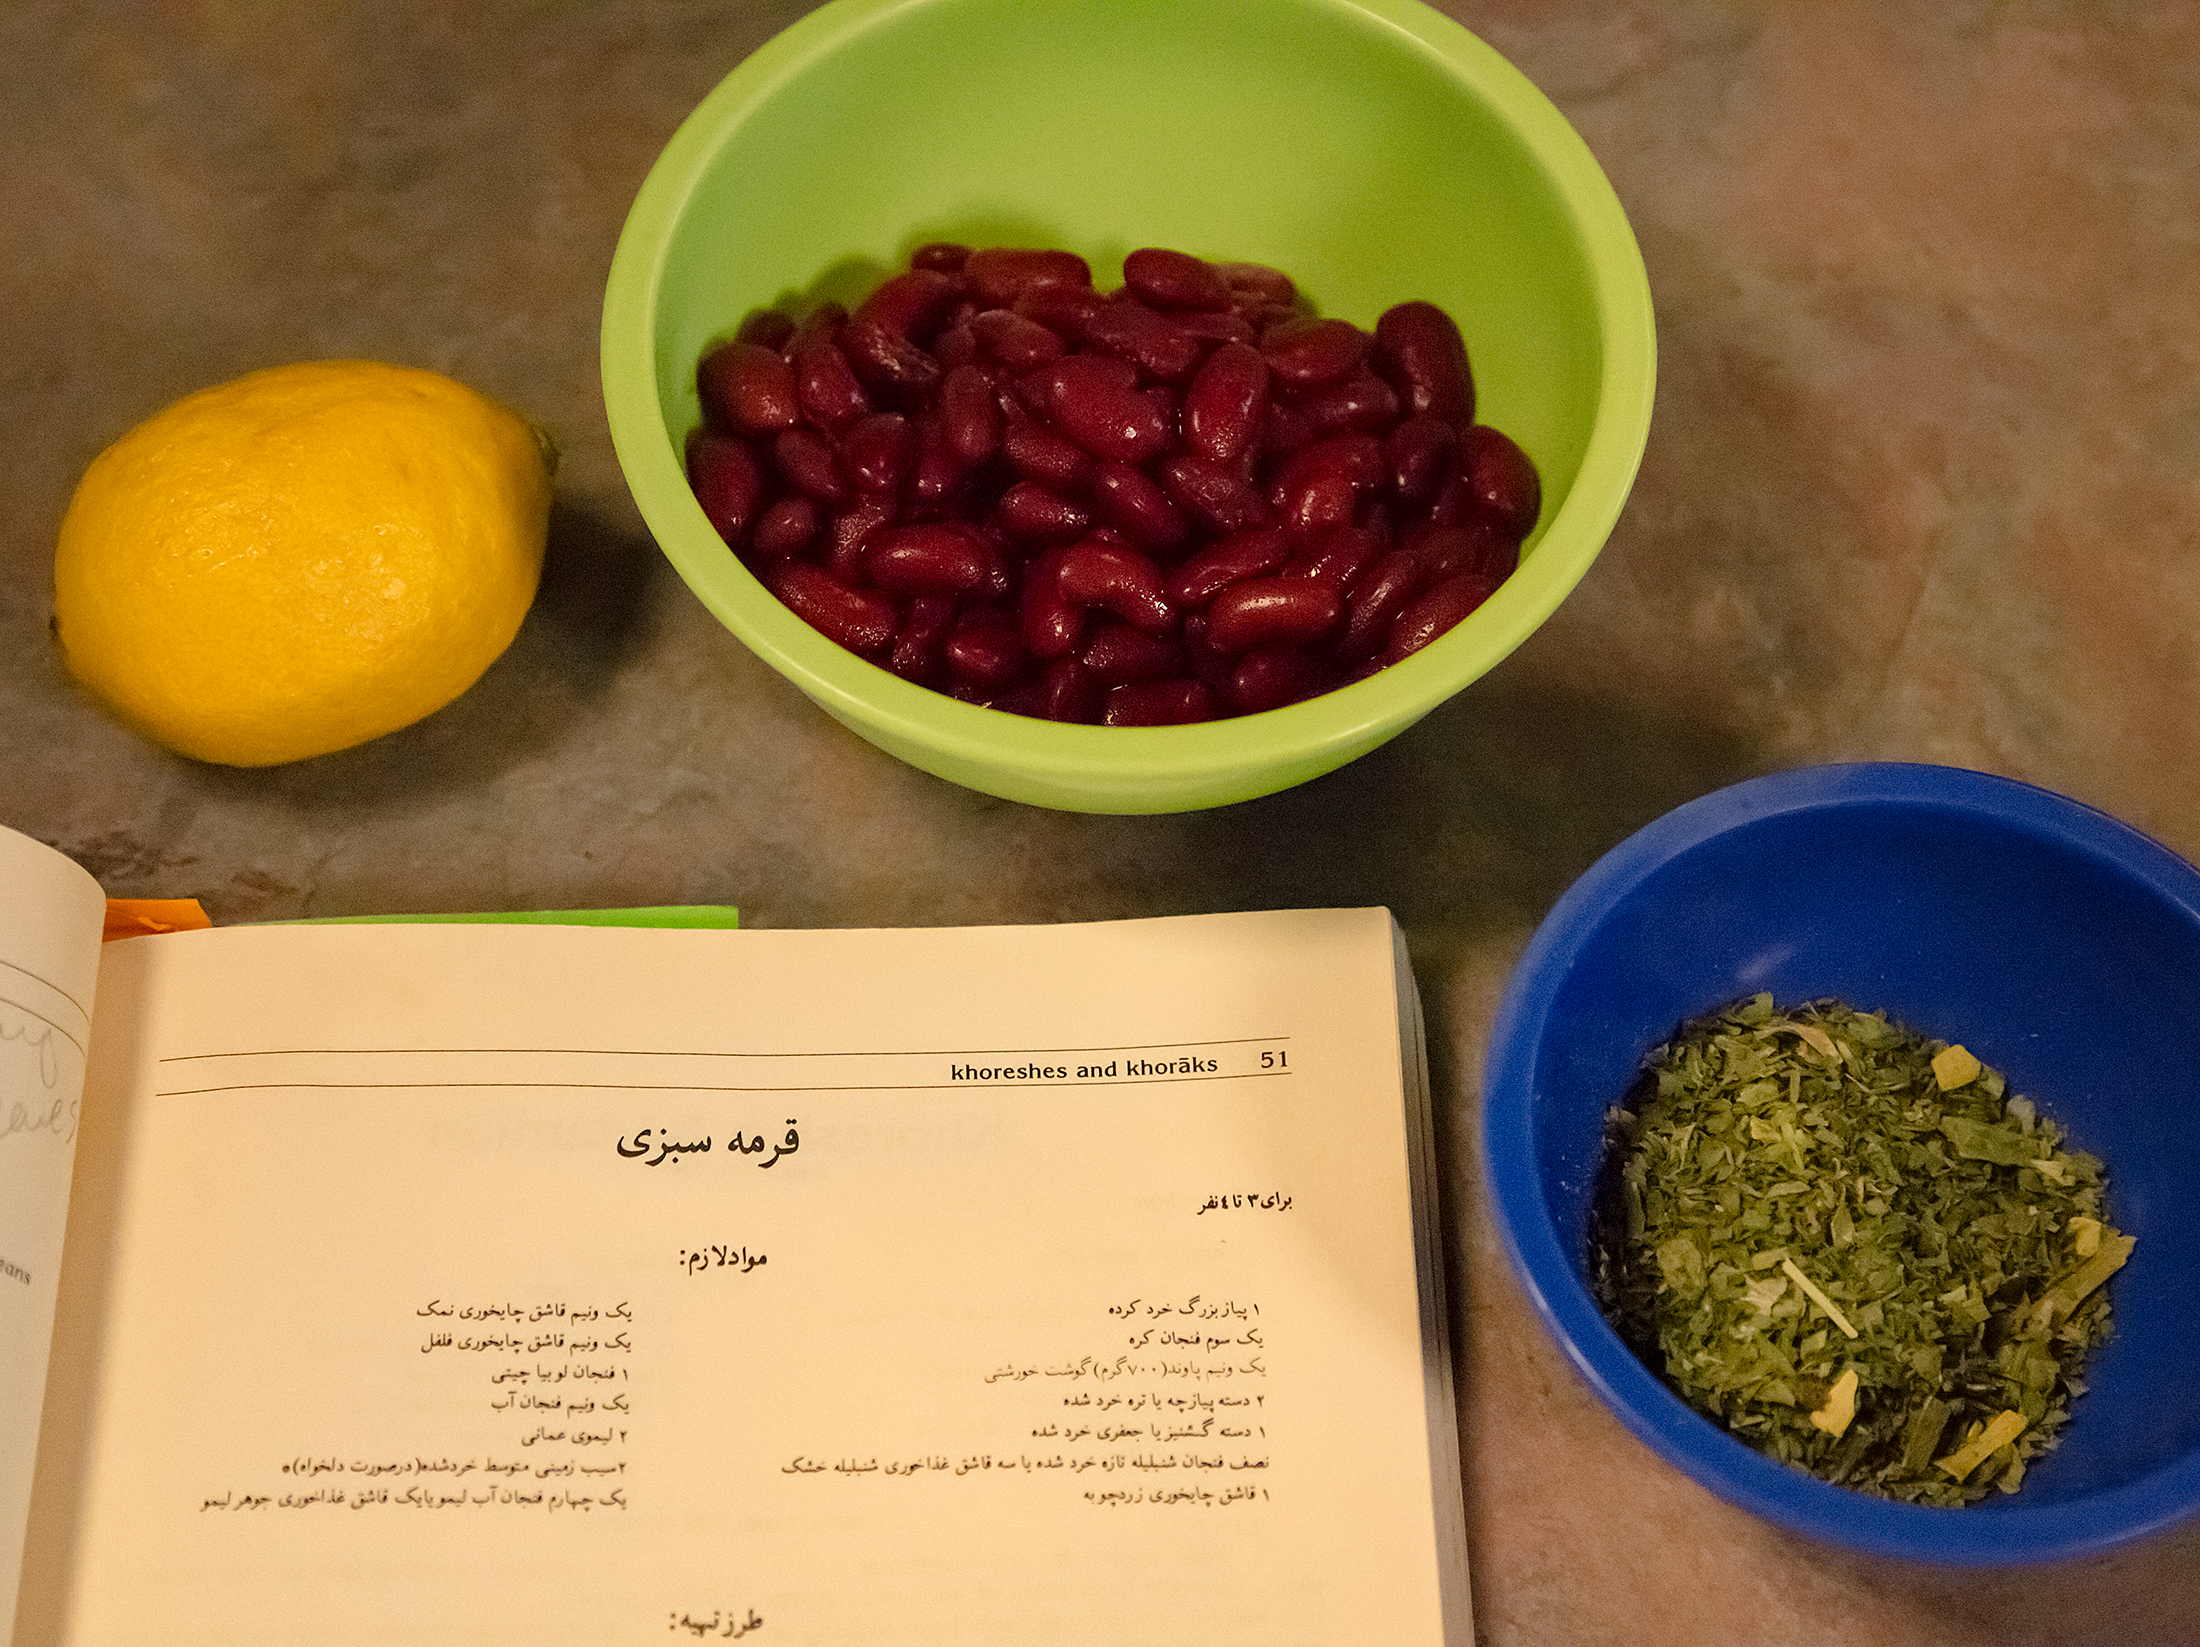 A lemon, kidney beans, minced parsley and a Persian cookbook